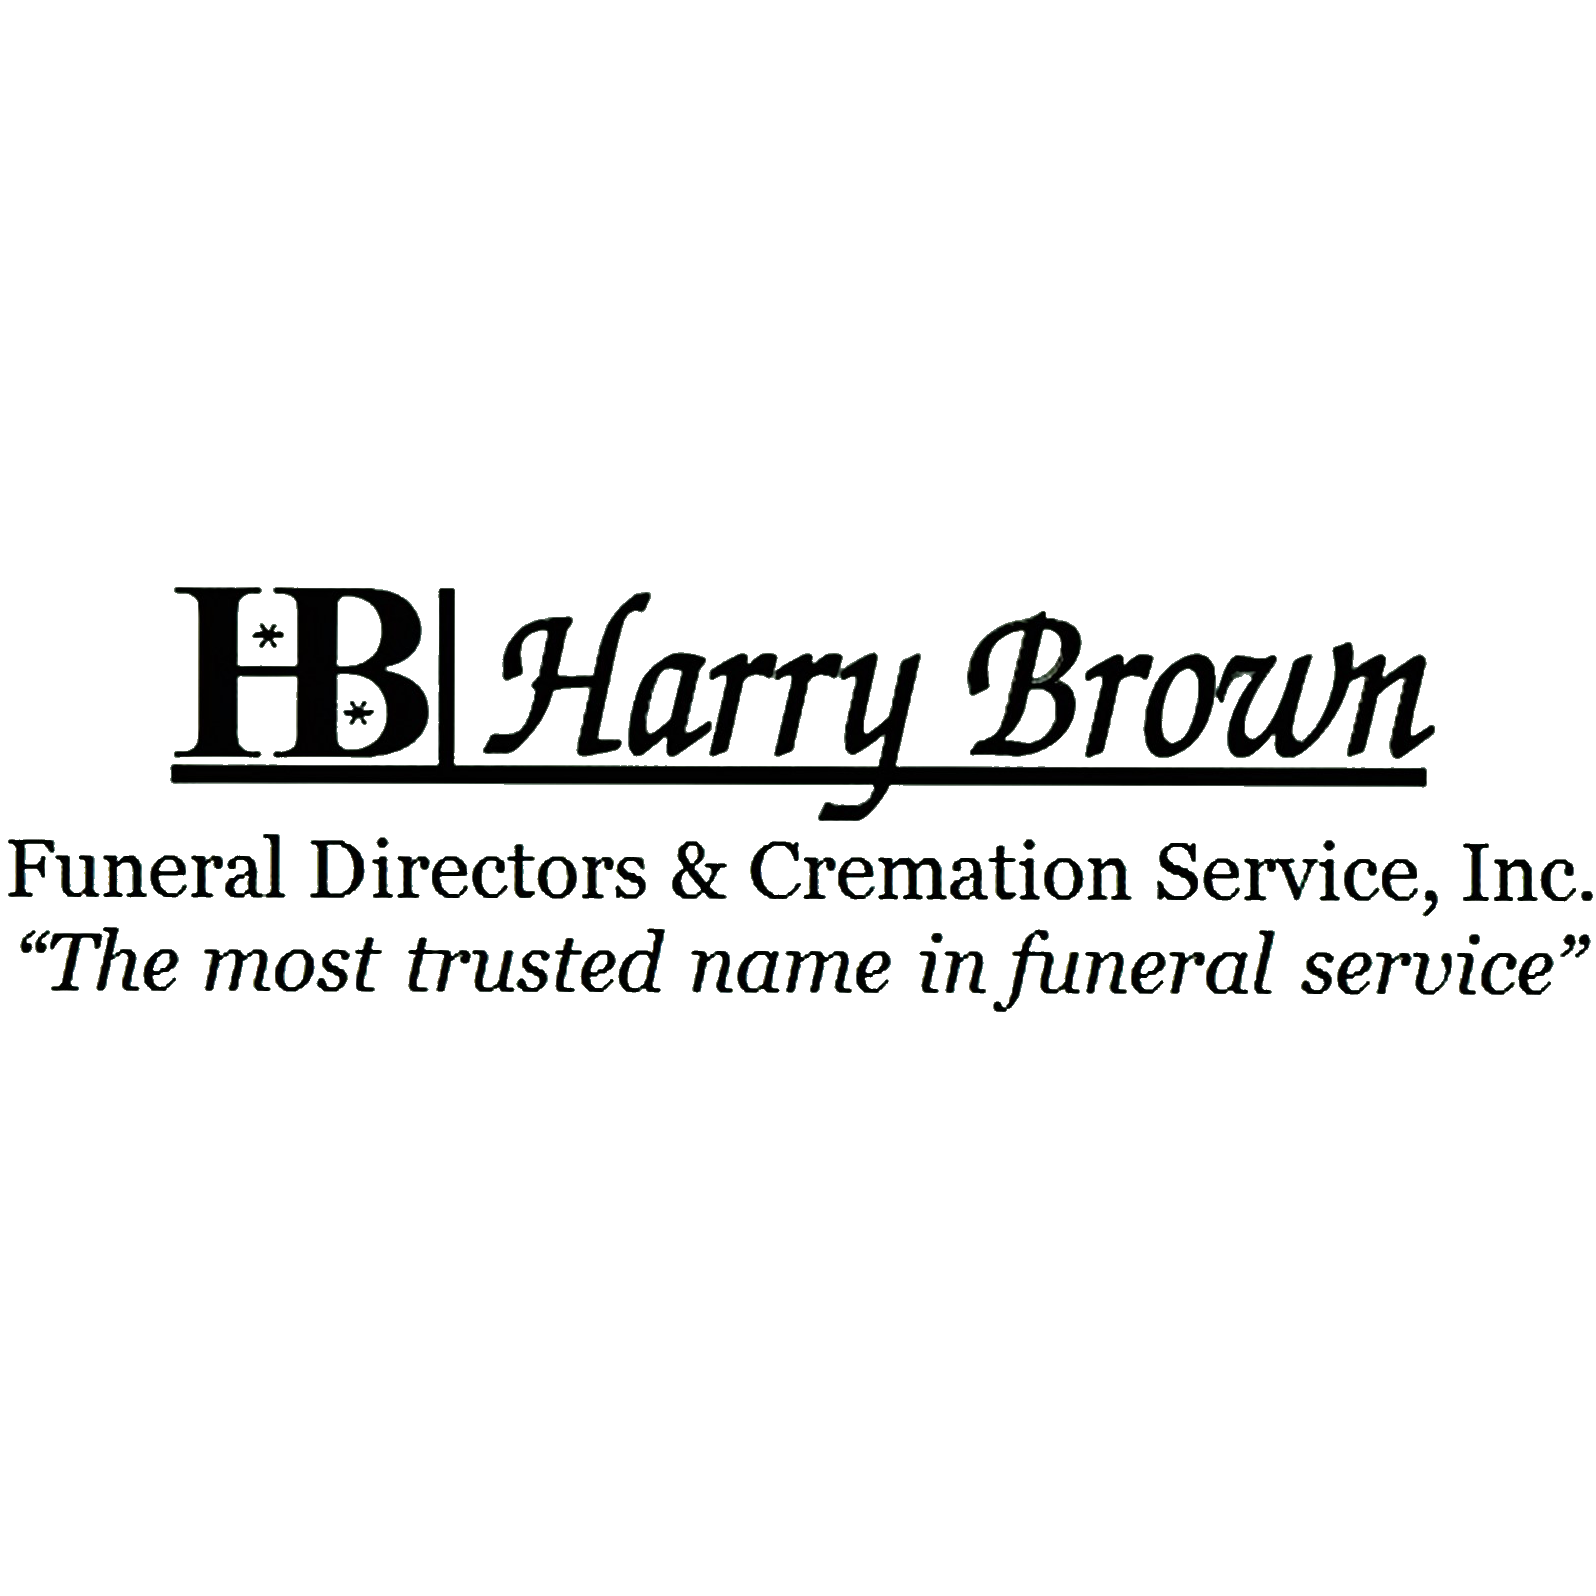 Harry Brown Funeral Directors & Cremation Service